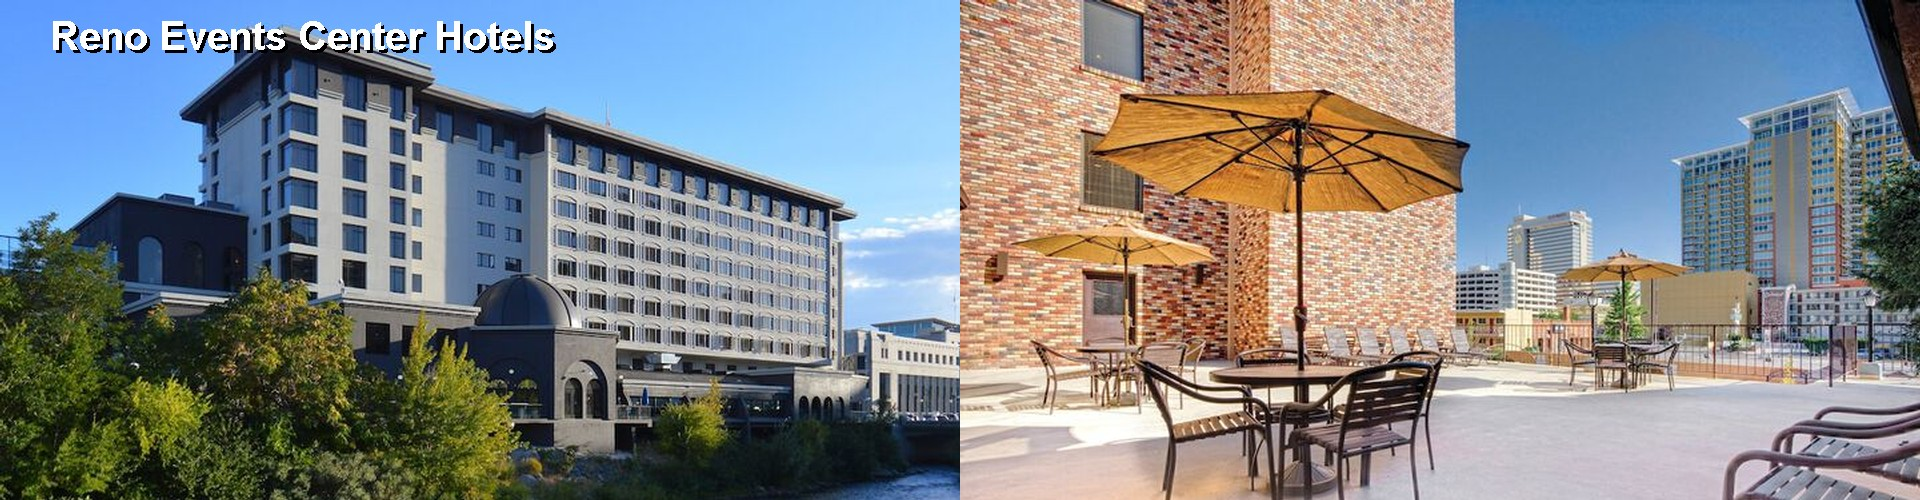 5 Best Hotels near Reno Events Center